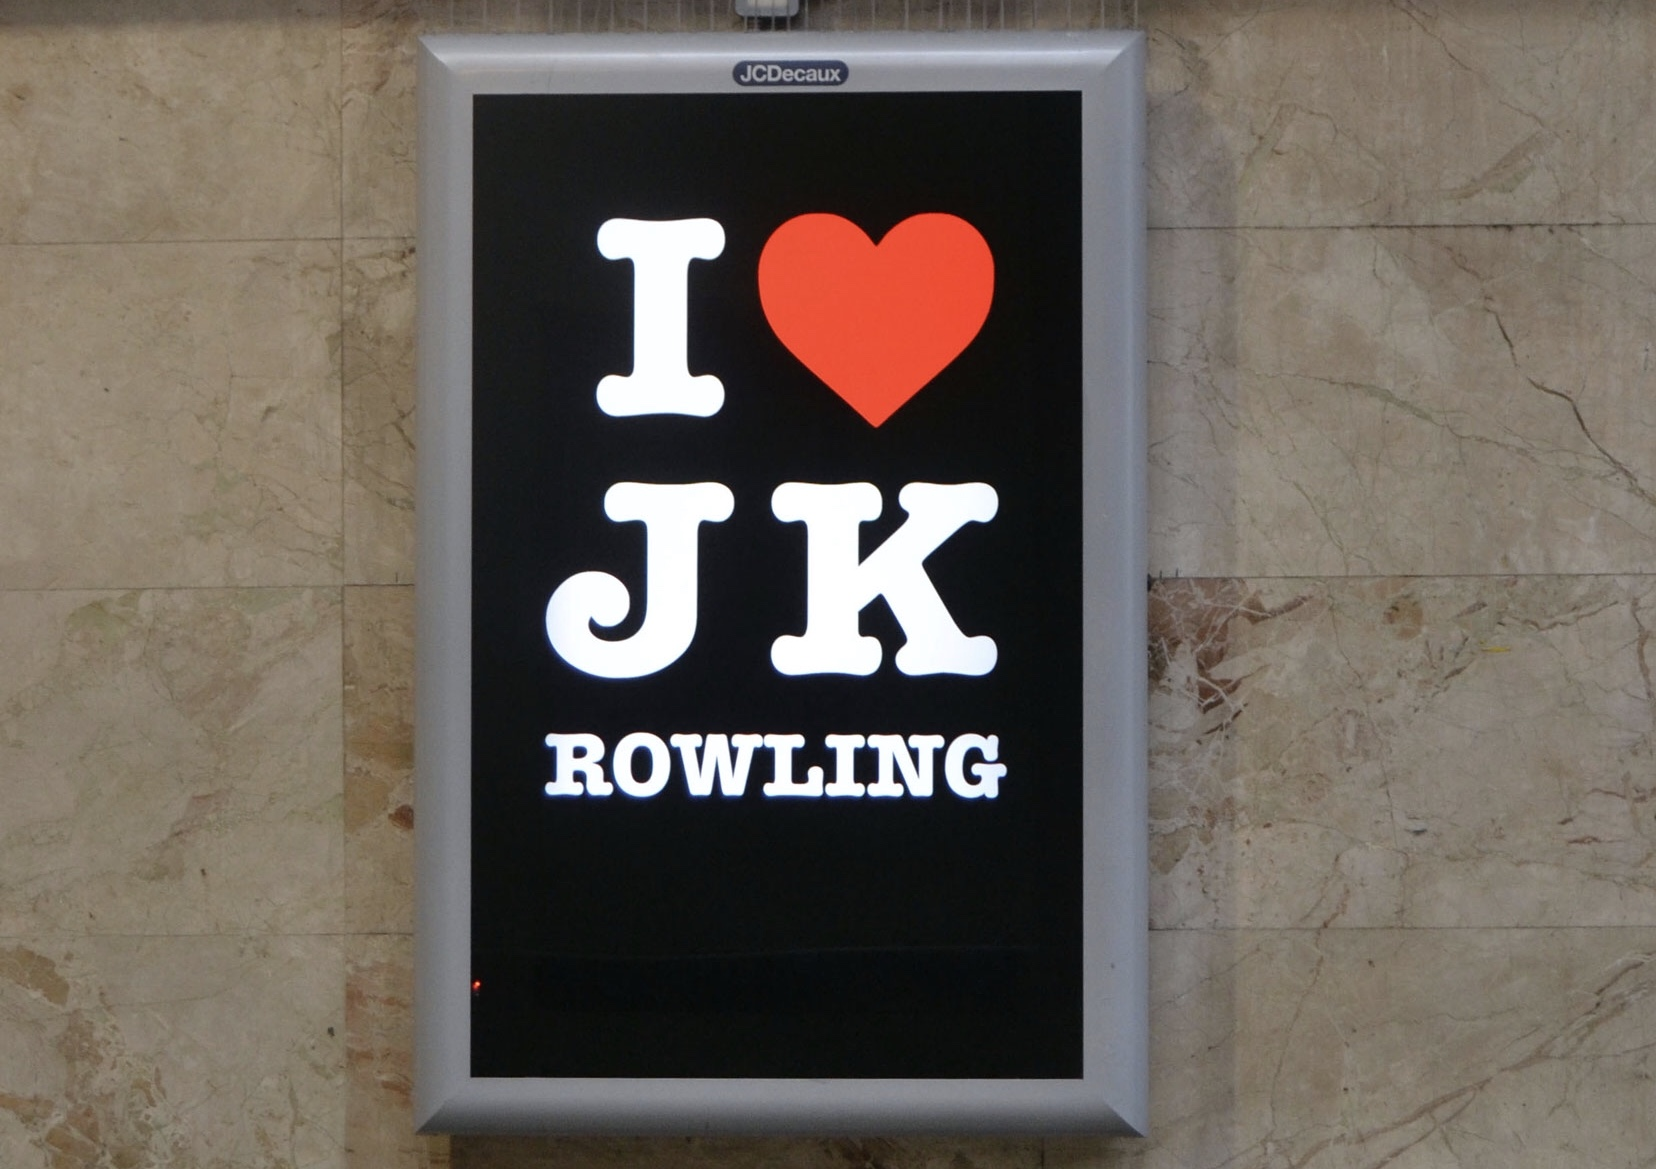 Rowling poster debacle shows just why hate plans so dangerous